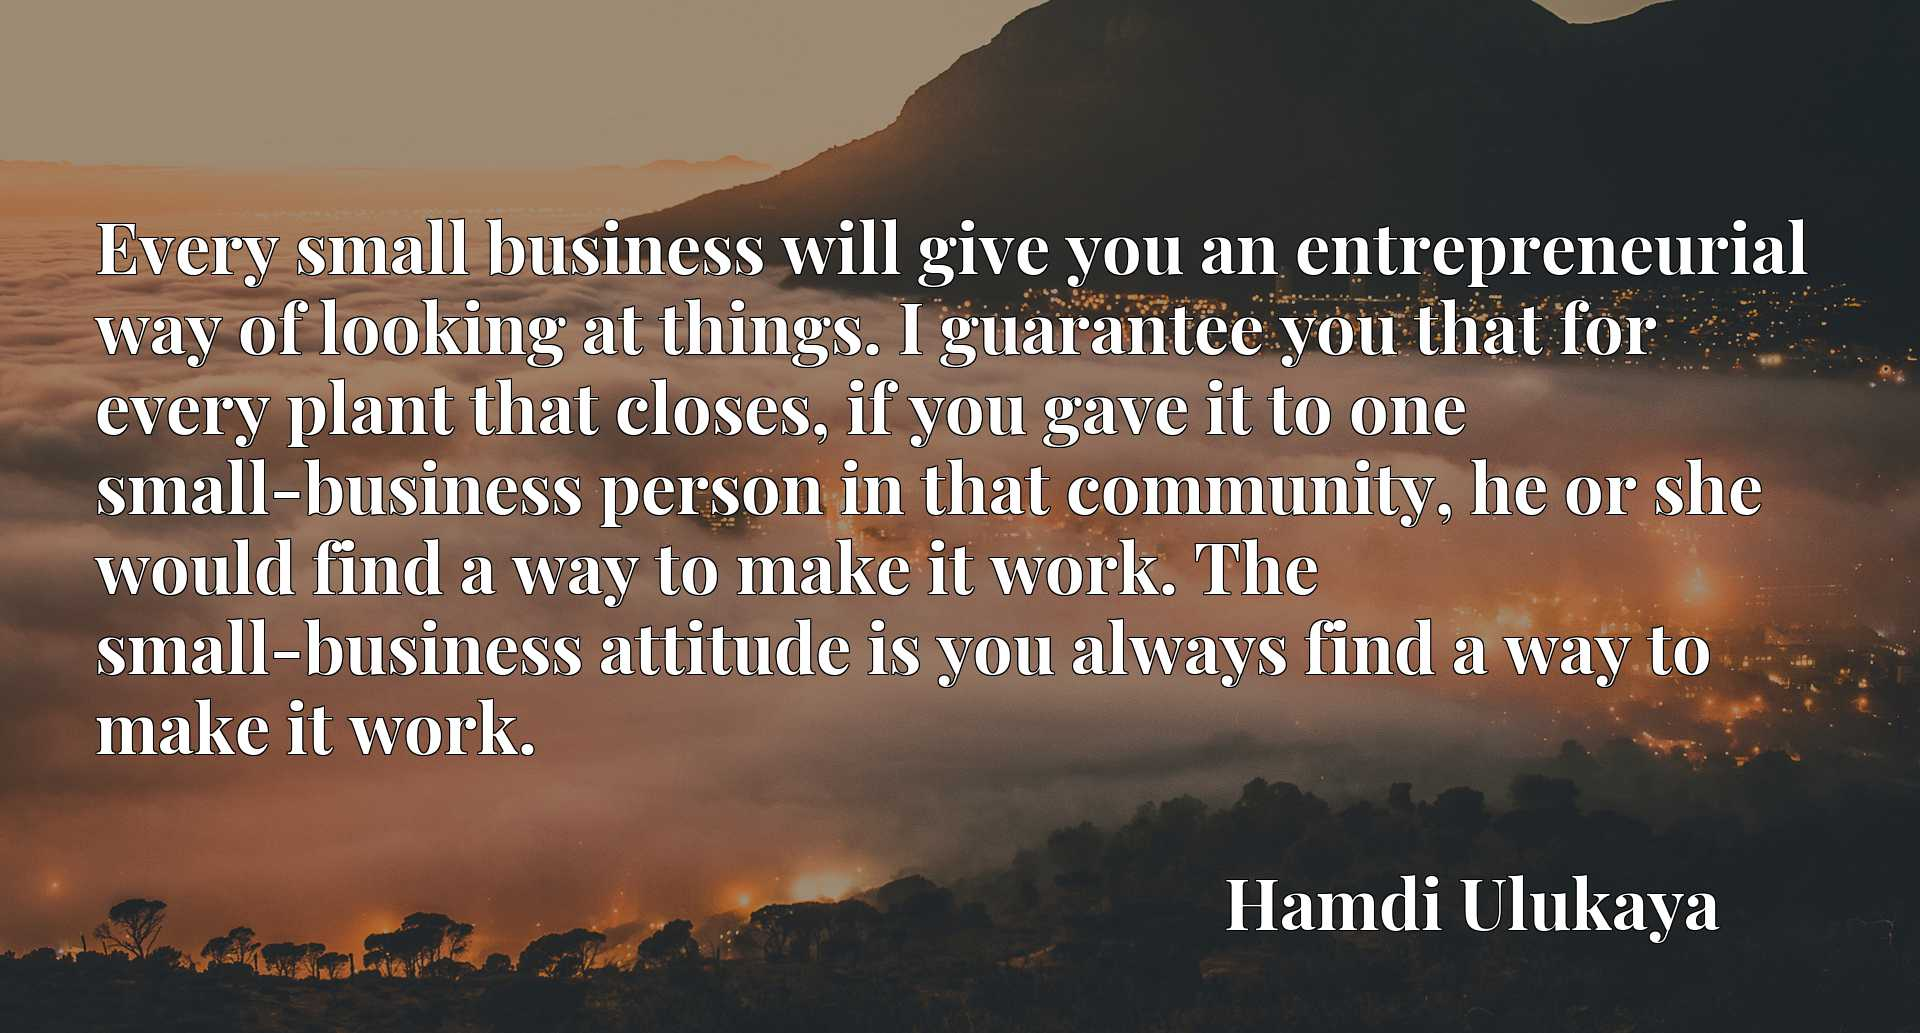 Every small business will give you an entrepreneurial way of looking at things. I guarantee you that for every plant that closes, if you gave it to one small-business person in that community, he or she would find a way to make it work. The small-business attitude is you always find a way to make it work.